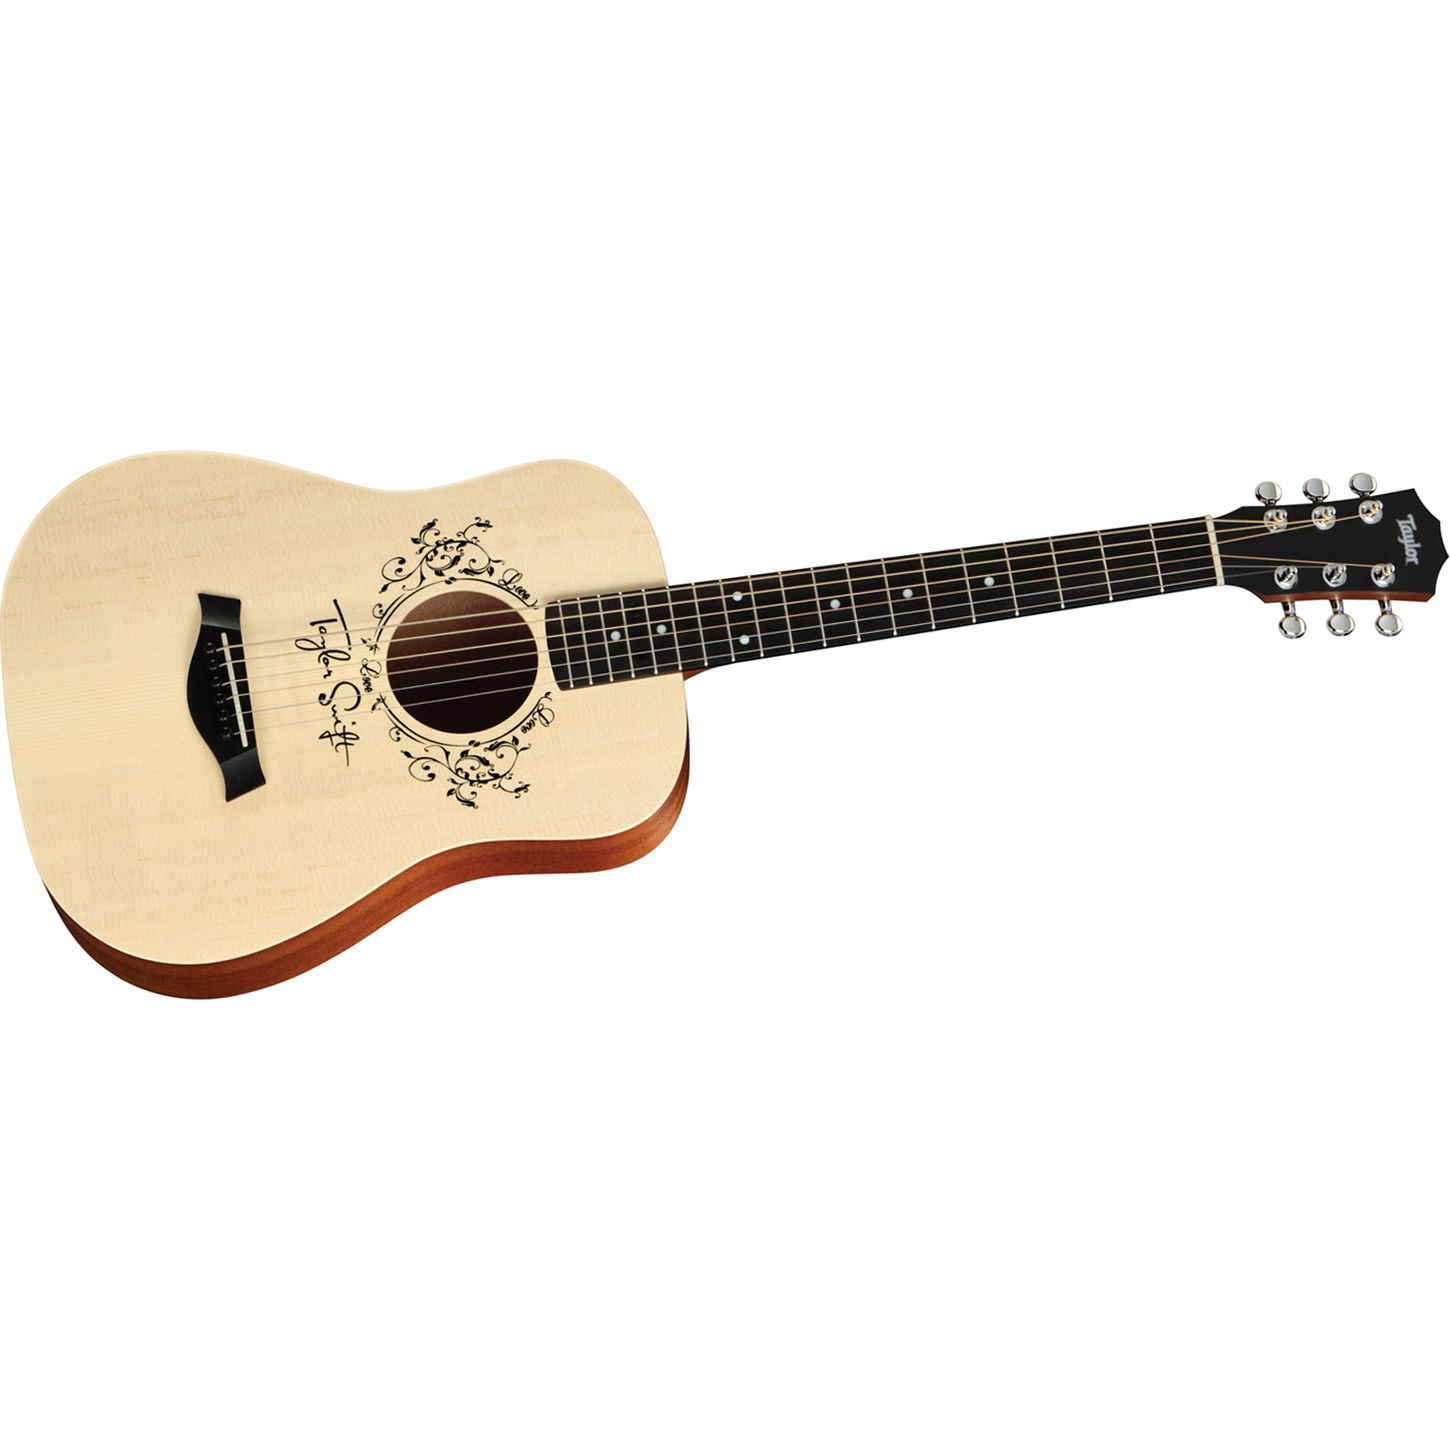 Taylor Taylor Swift Signature Acoustic Guitar Natural 3 4 Size Dreadnought